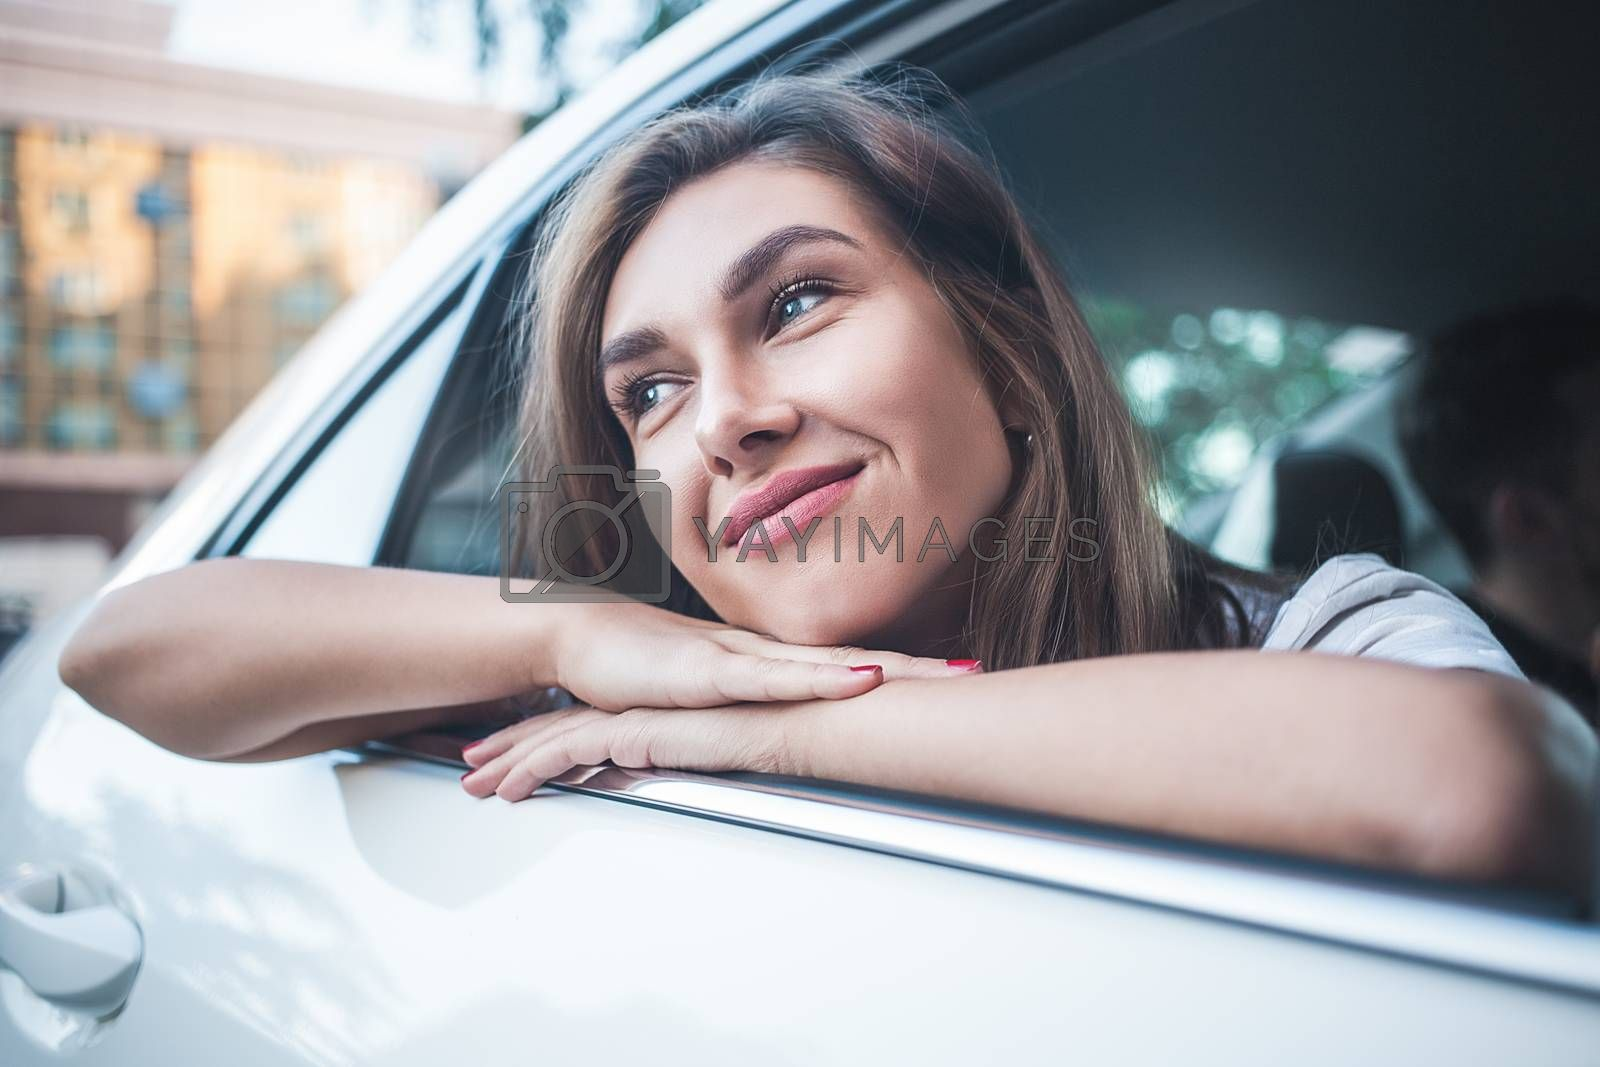 Portrait of cute smiling girl sit in the car and look at the street